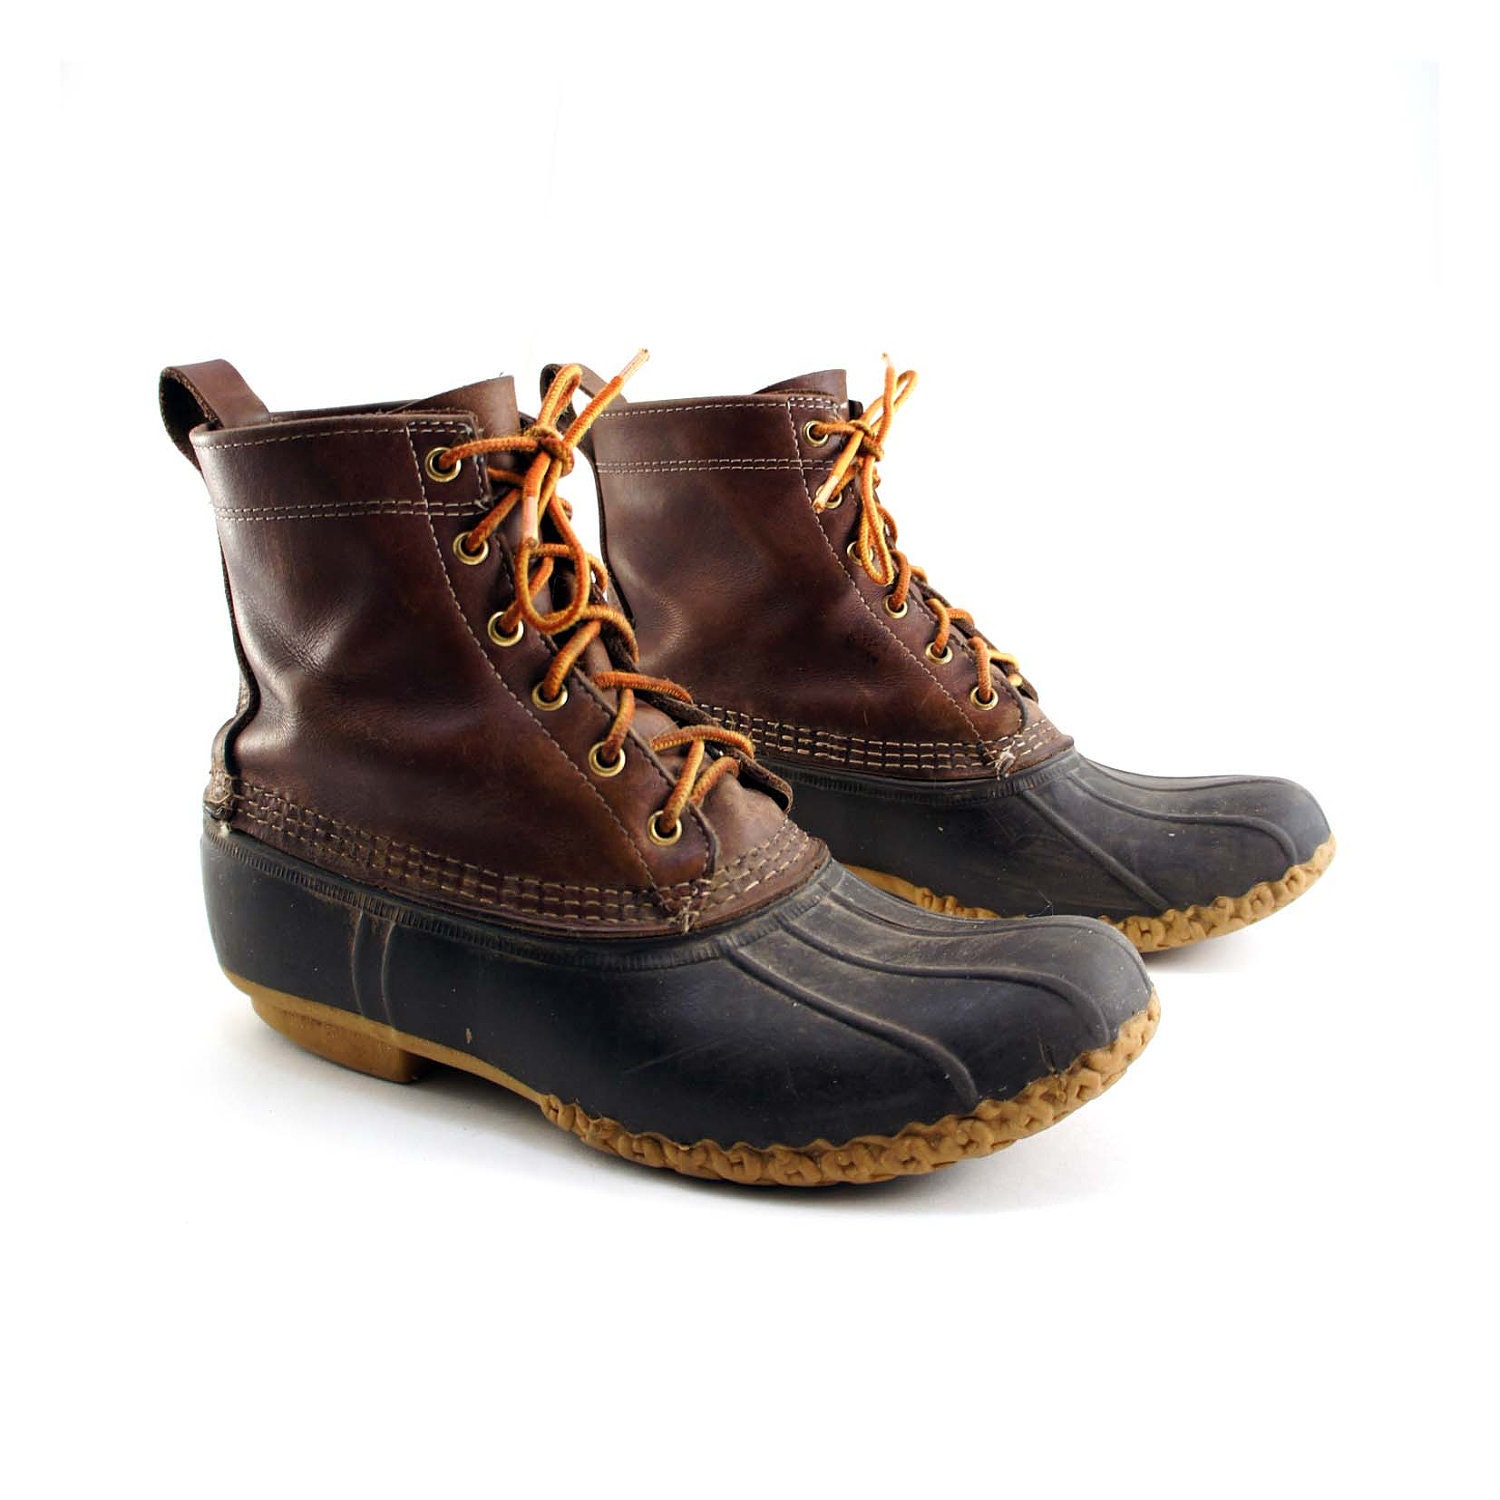 Duck boots men - photo#1